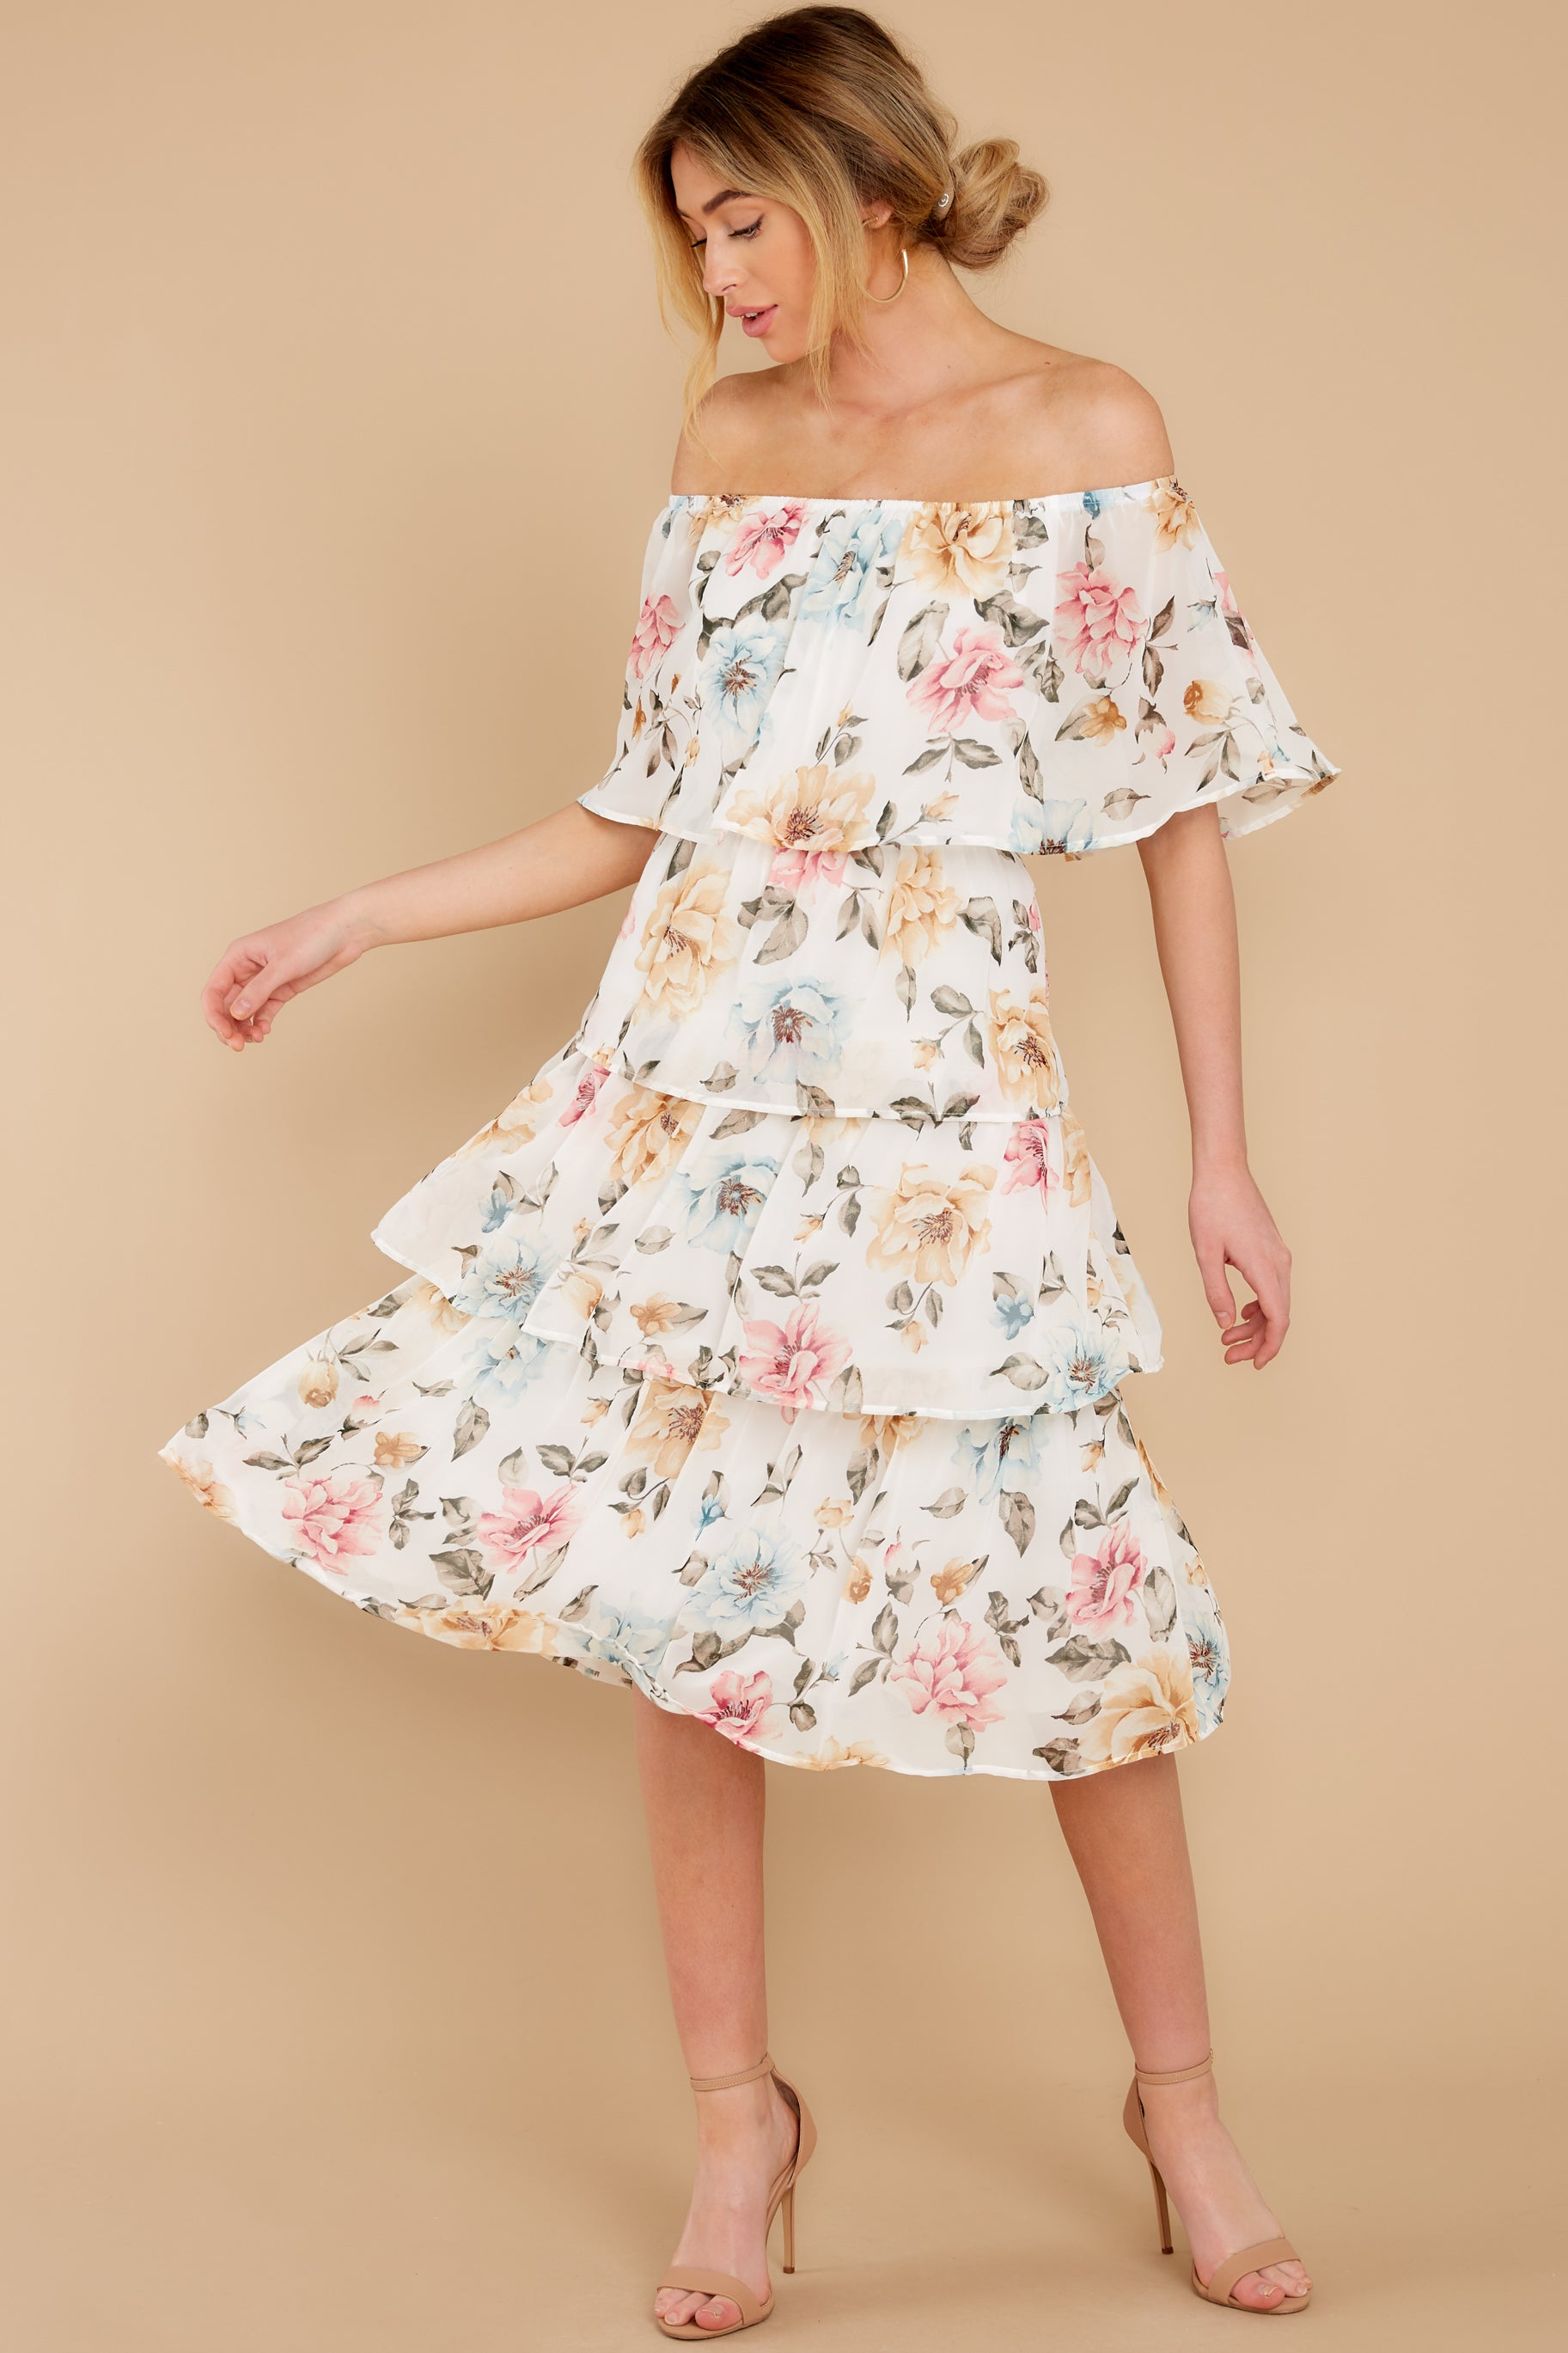 4 In My Dreams Ivory Floral Print Midi Dress at reddress.com